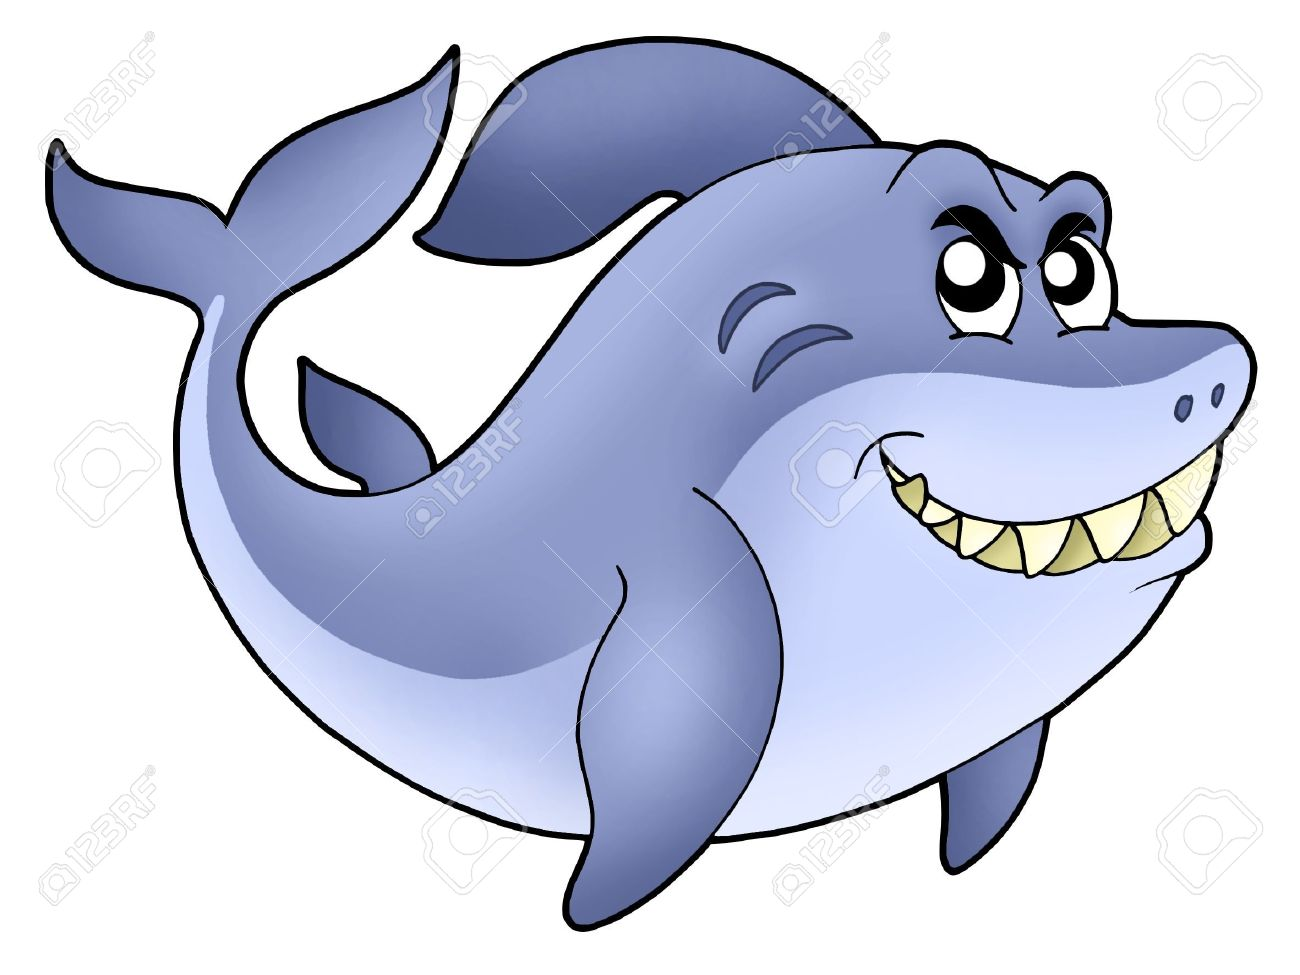 Big Cartoon Shark - Color Illustration. Stock Photo, Picture And ...